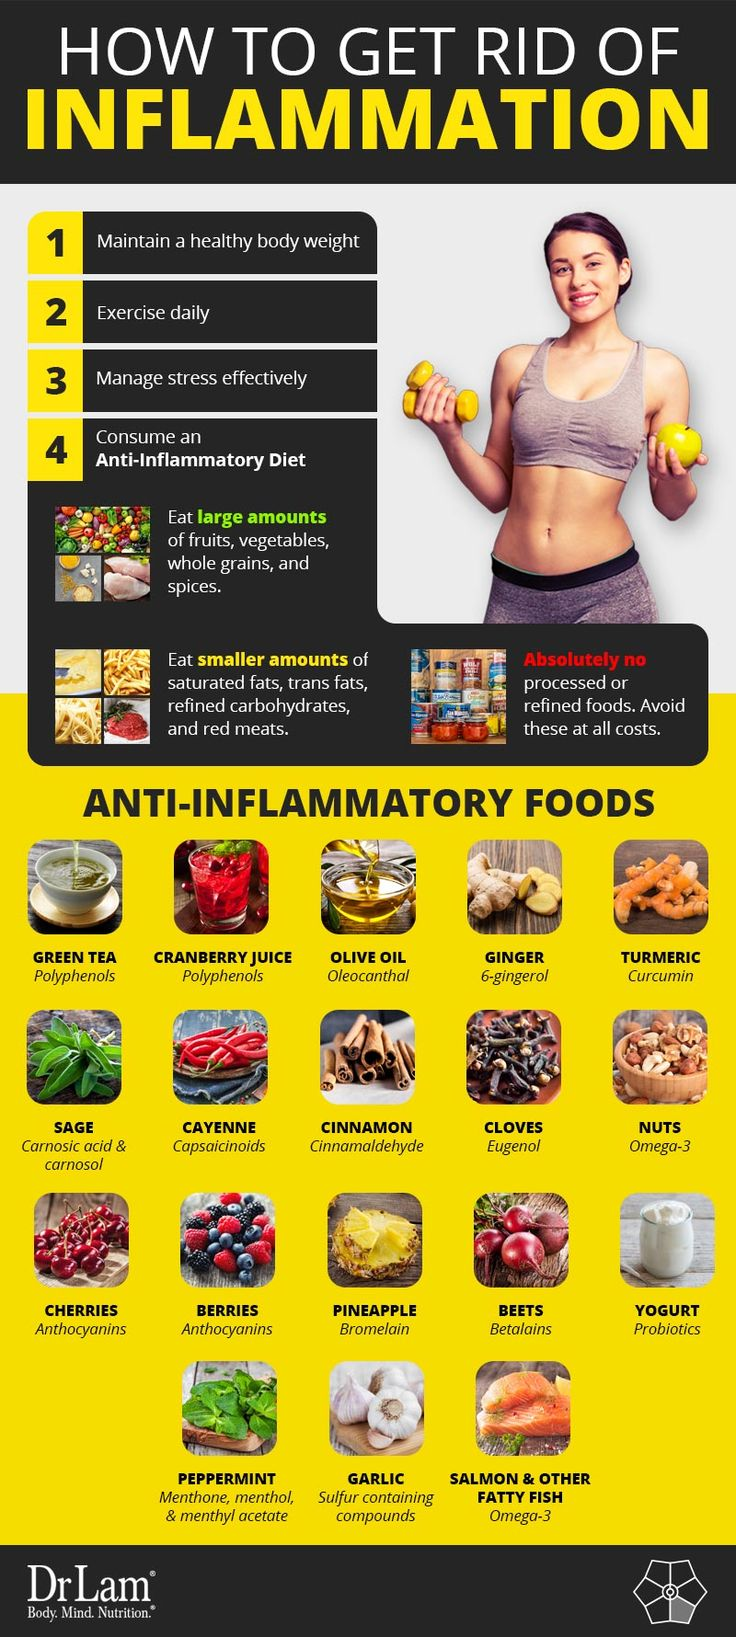 The Anti-Inflammatory Diet: How to Get Rid of Inflammation in the Body